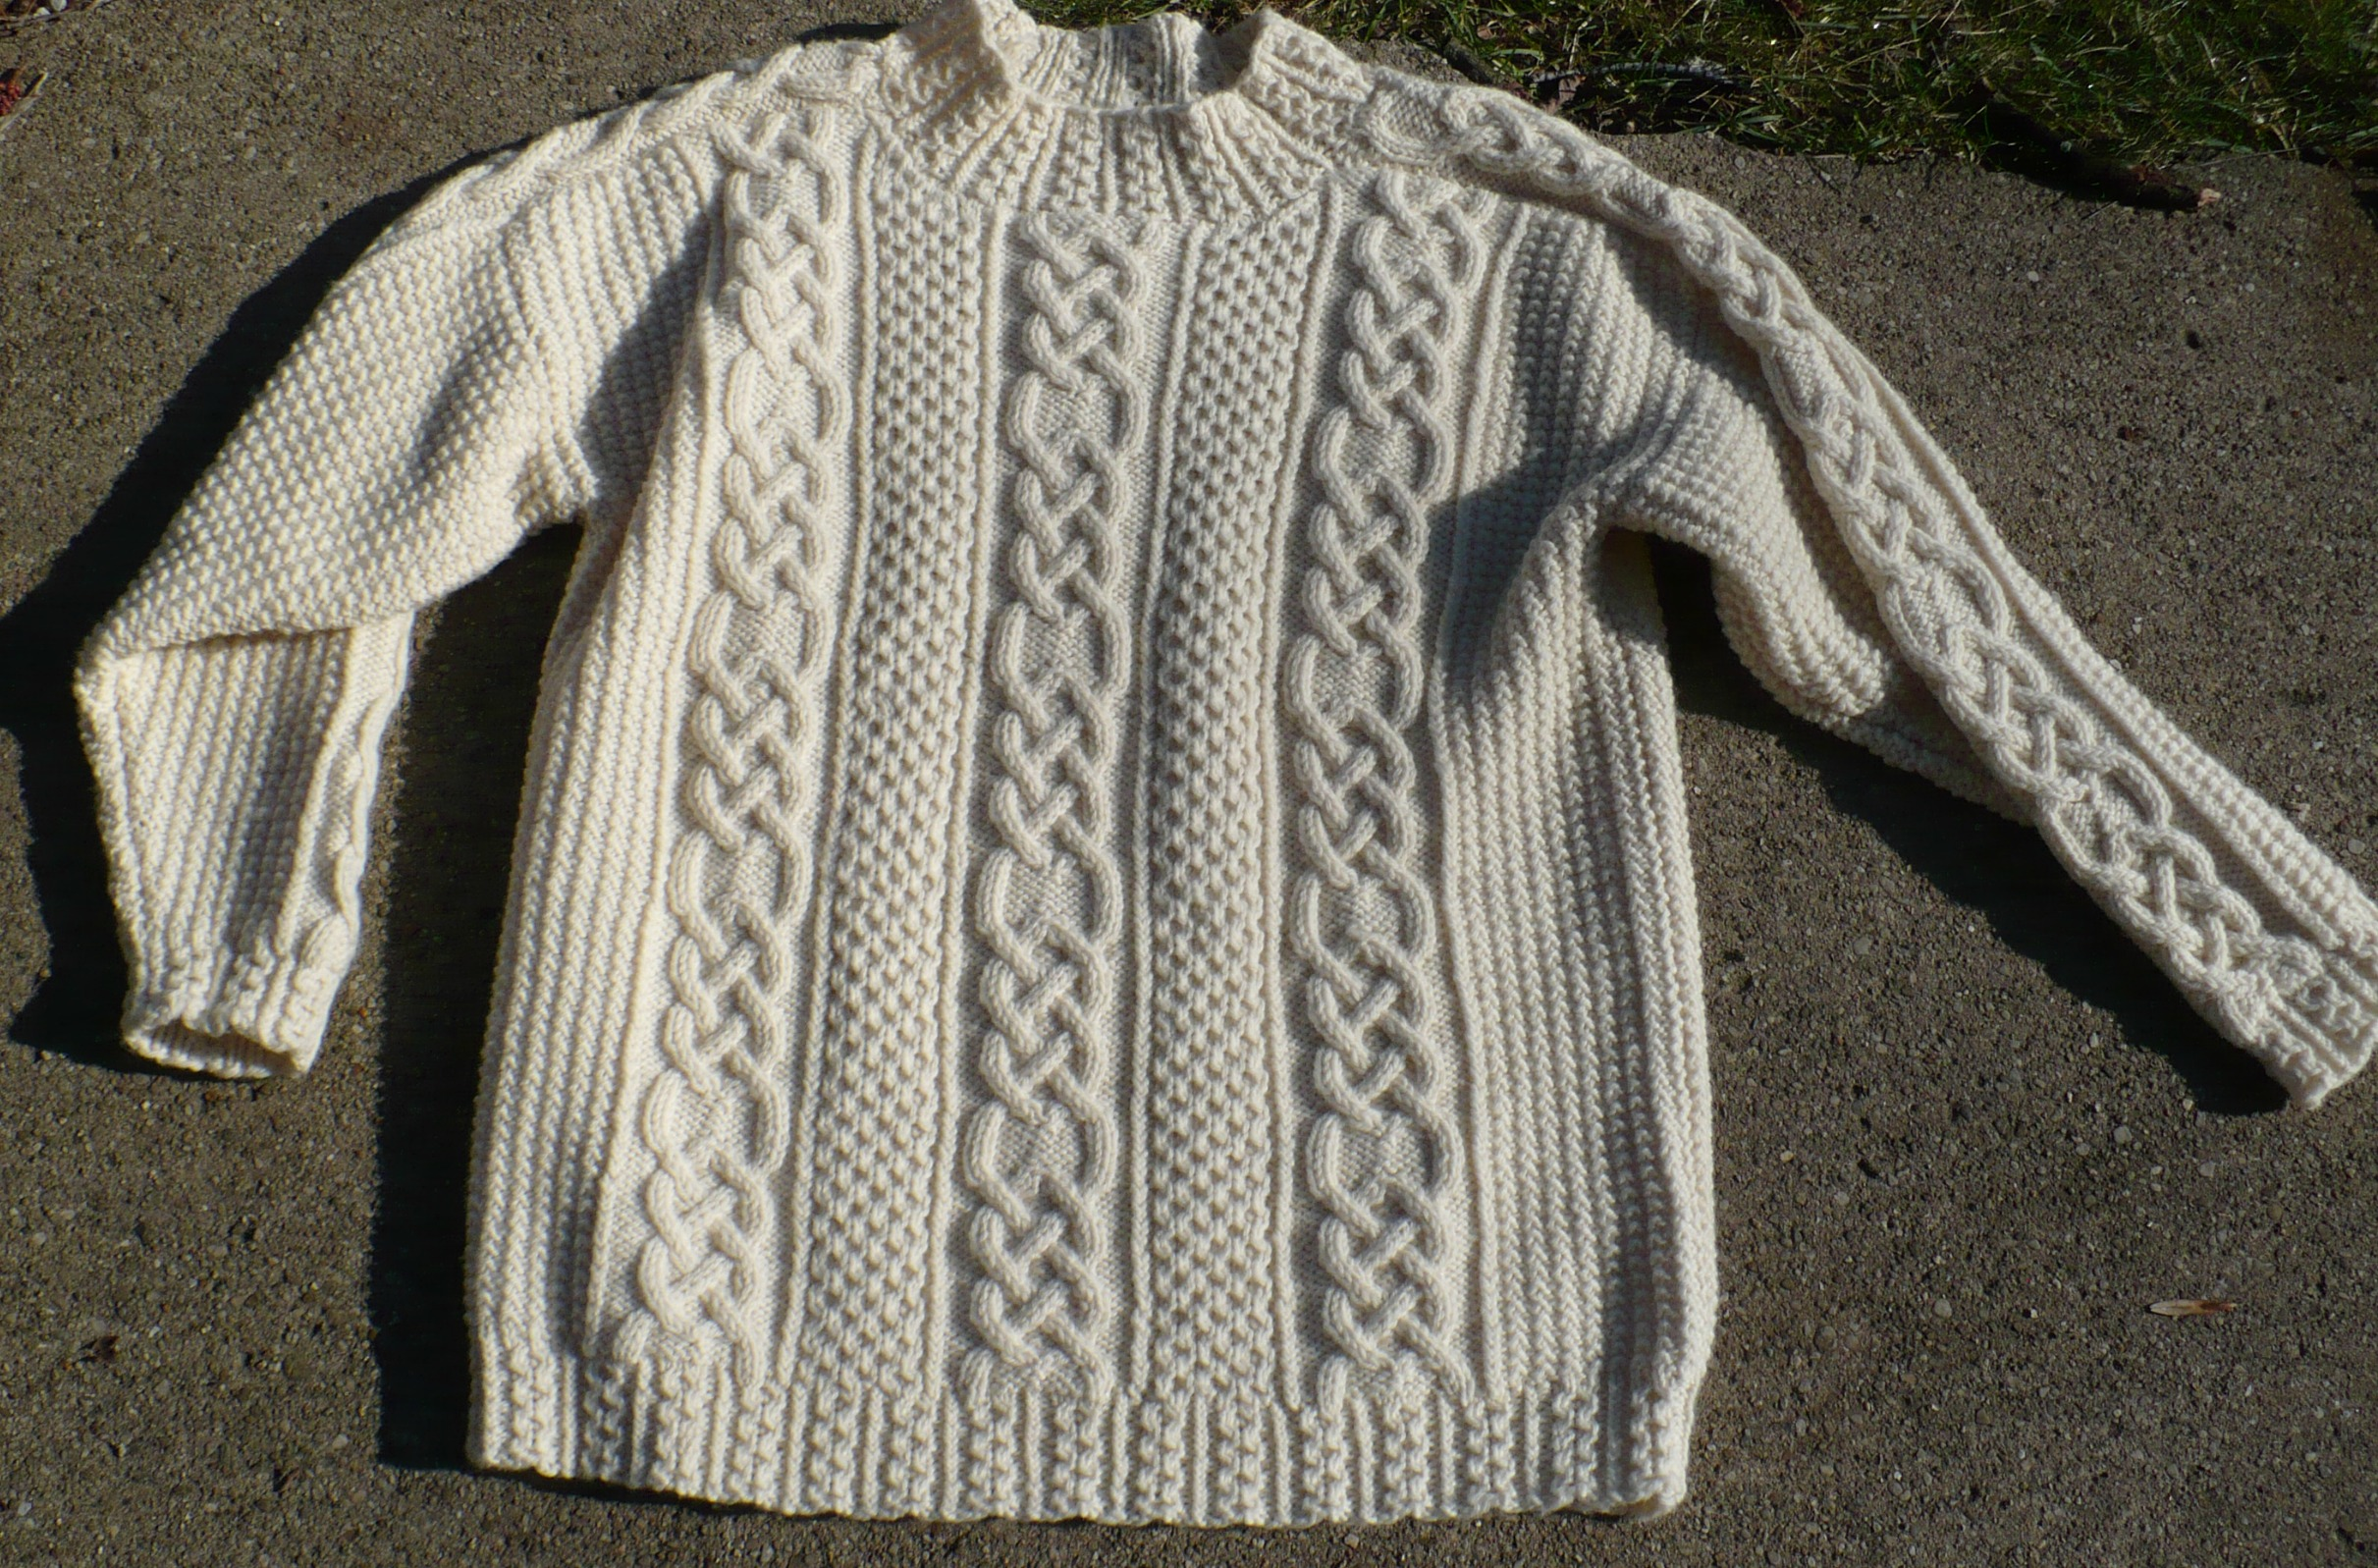 Fisherman Knit Sweater Pattern : Handmade Irish Fishermans Sweater